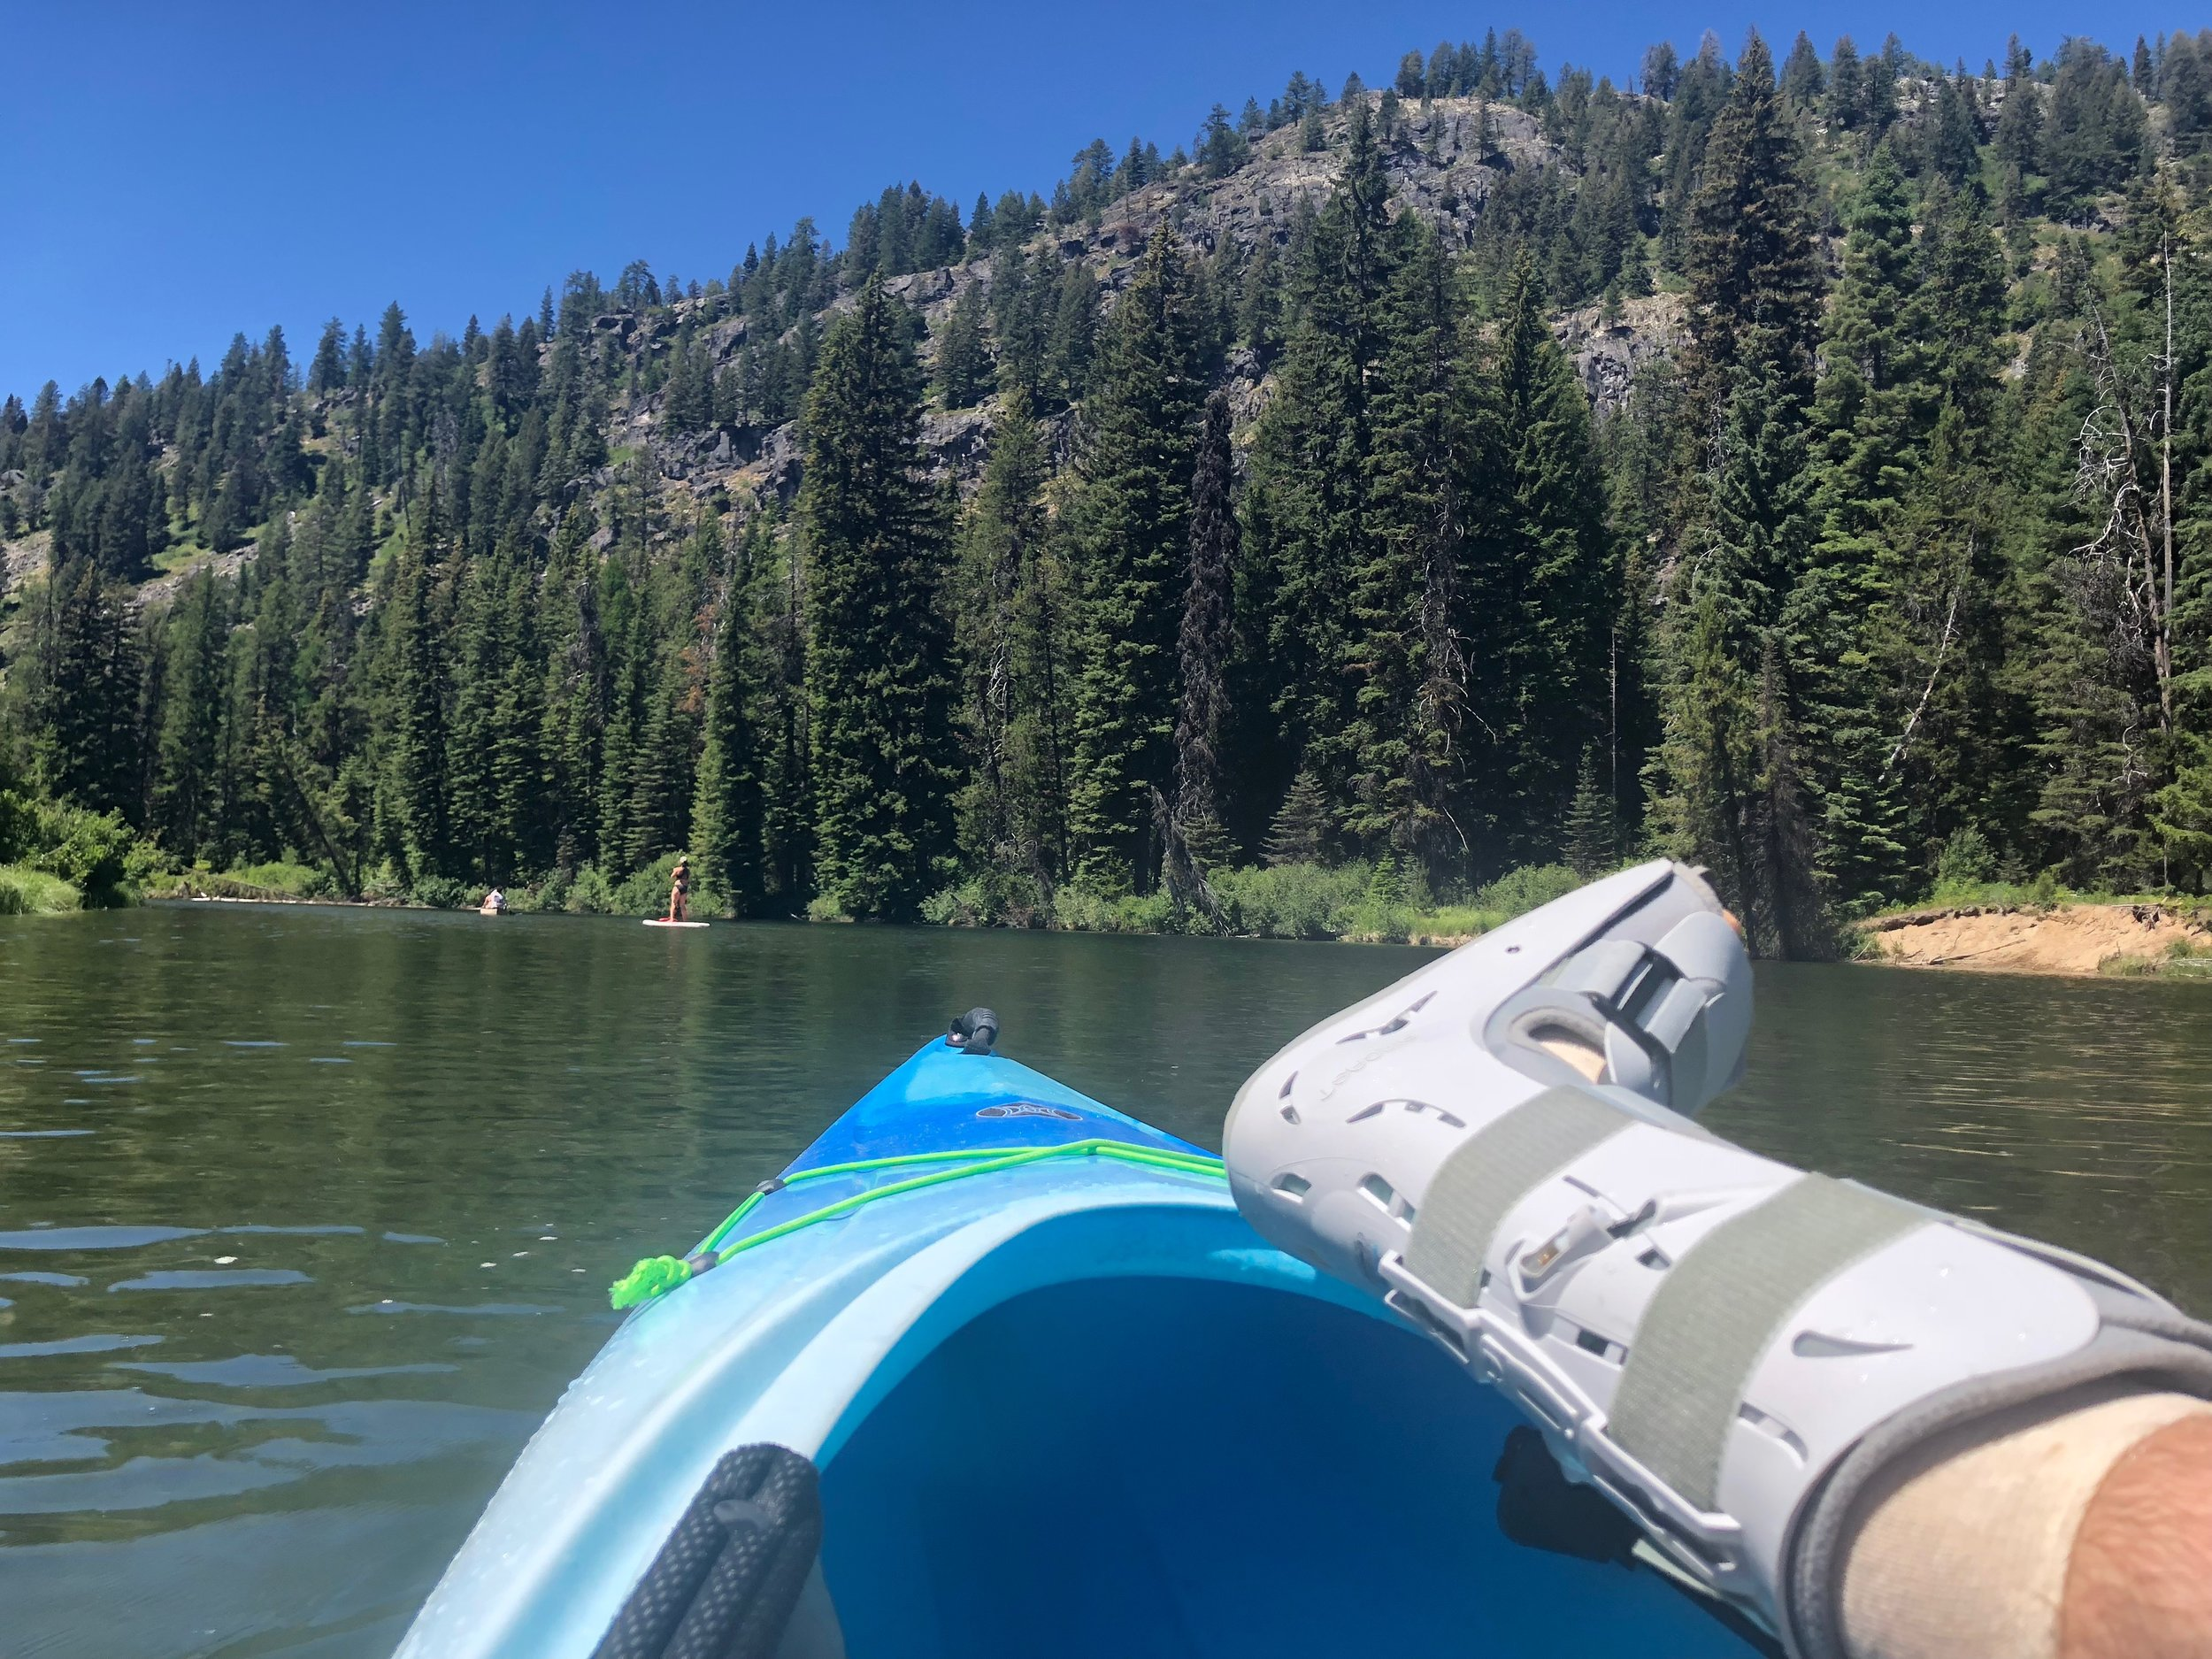 It's a bad idea to get a wound like this wet, so kayaking isn't advisable, but it was a great way to get outside and alleviate some of the mounting depression that came during recovery.